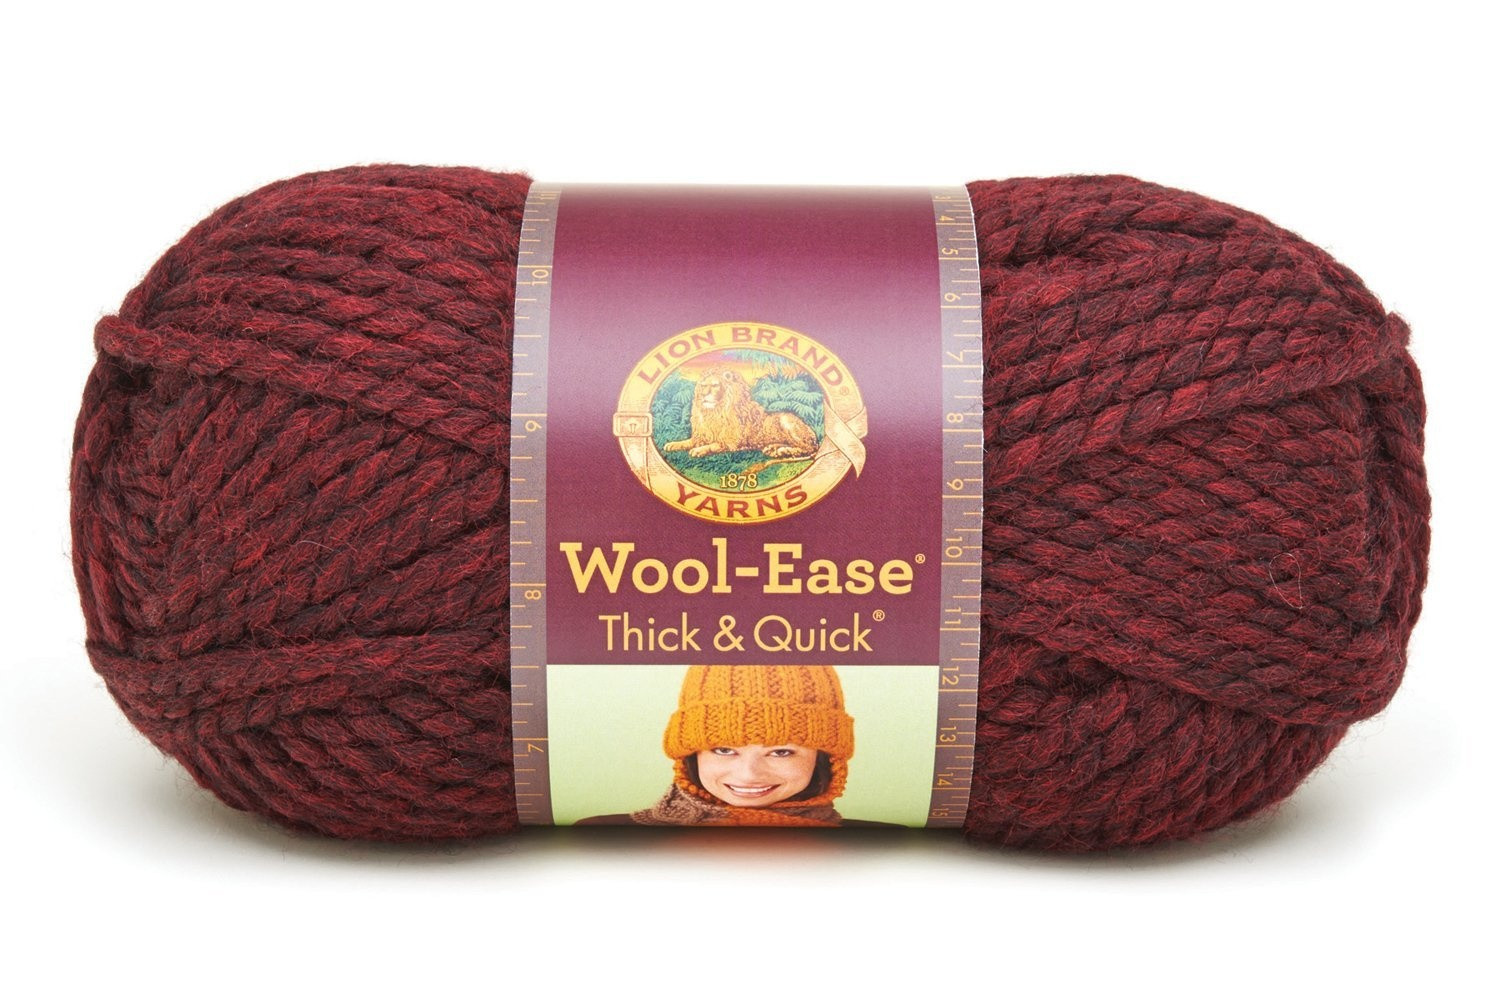 Wool Ease Thick and Quick Yarn Luxury Lion Brand Yarn 640 136f Wool Ease Thick and Quick Yarn Of Charming 46 Pictures Wool Ease Thick and Quick Yarn